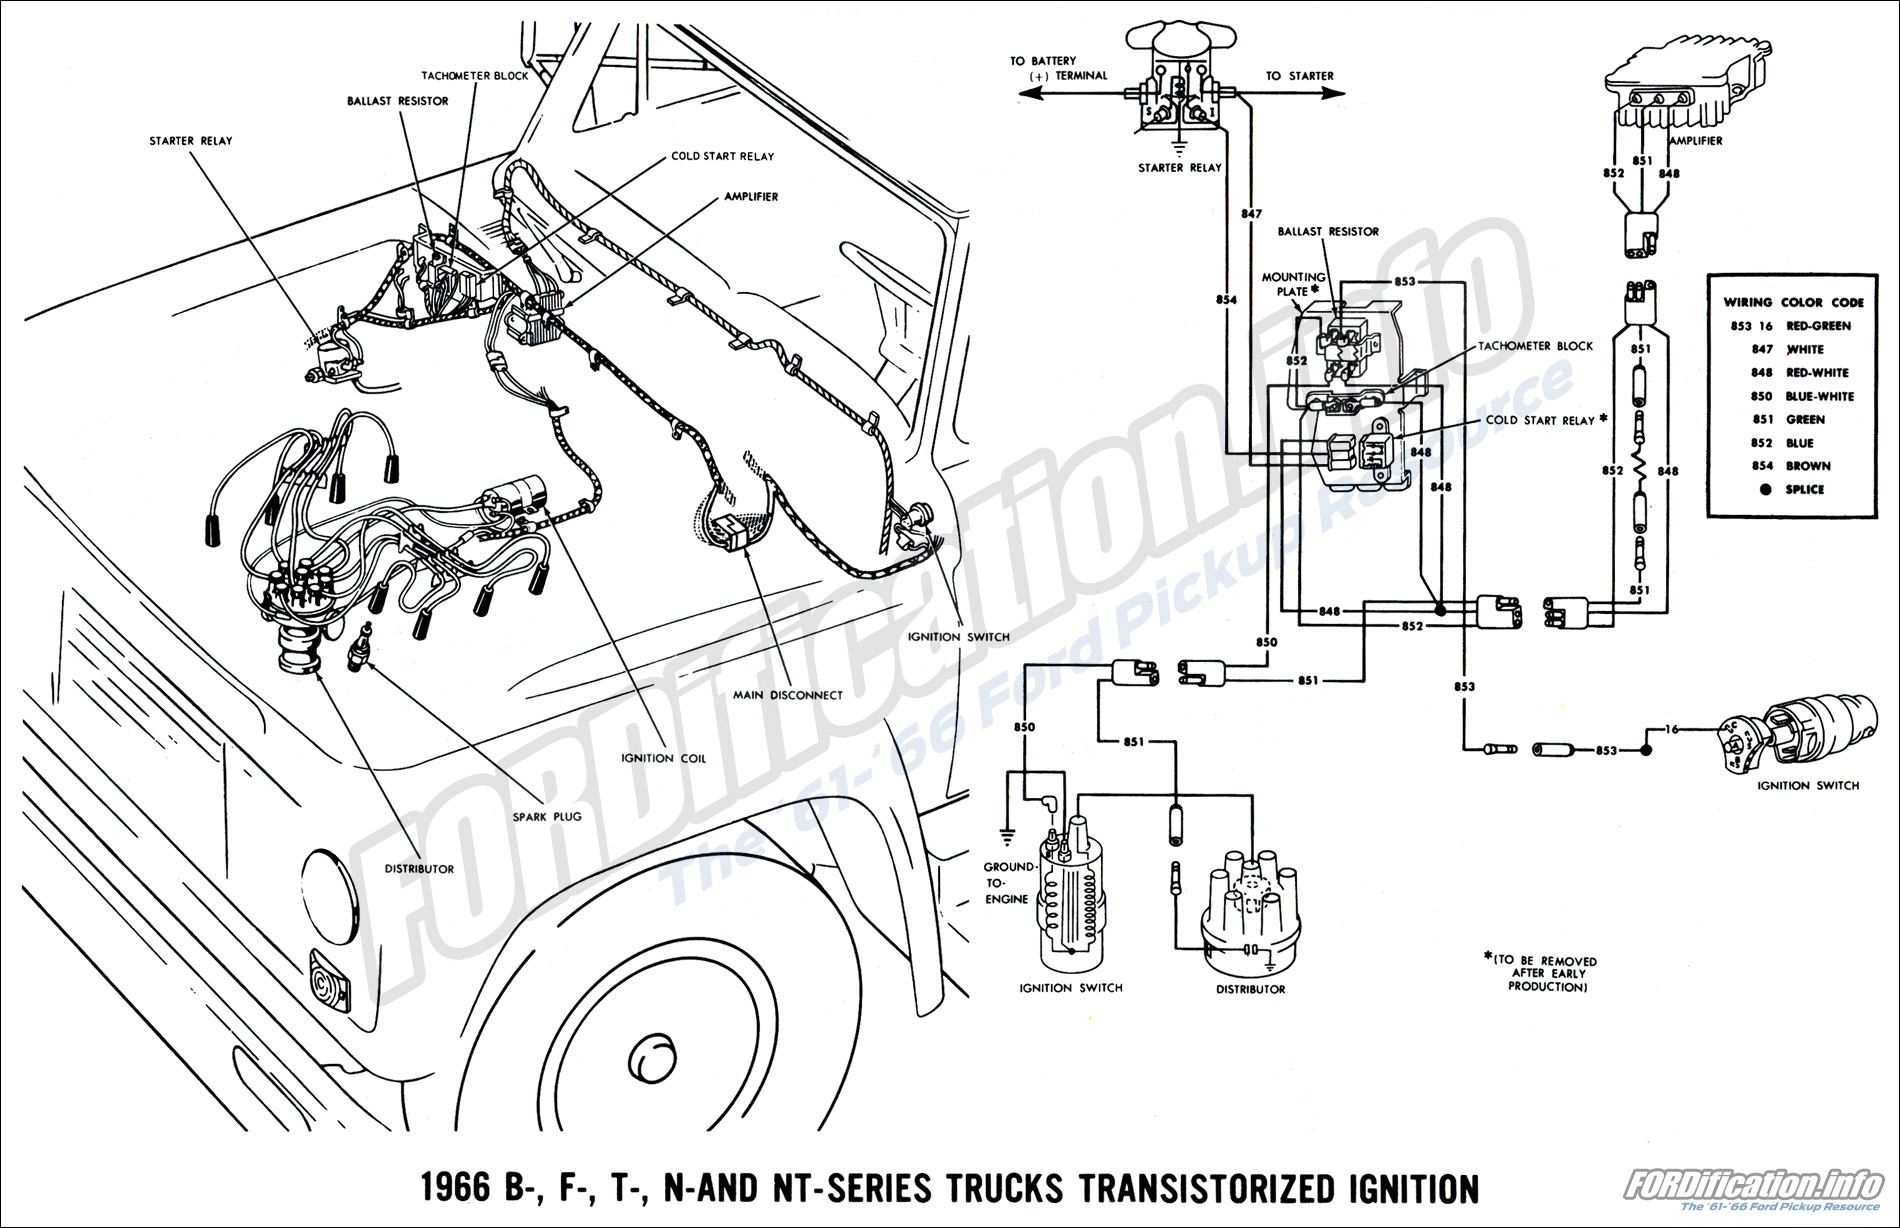 [DIAGRAM_09CH]  1966 Ford Truck Wiring Diagrams - FORDification.info - The '61-'66 Ford  Pickup Resource | 1966 Ford F100 Blinker Switch Wiring |  | FORDification.info